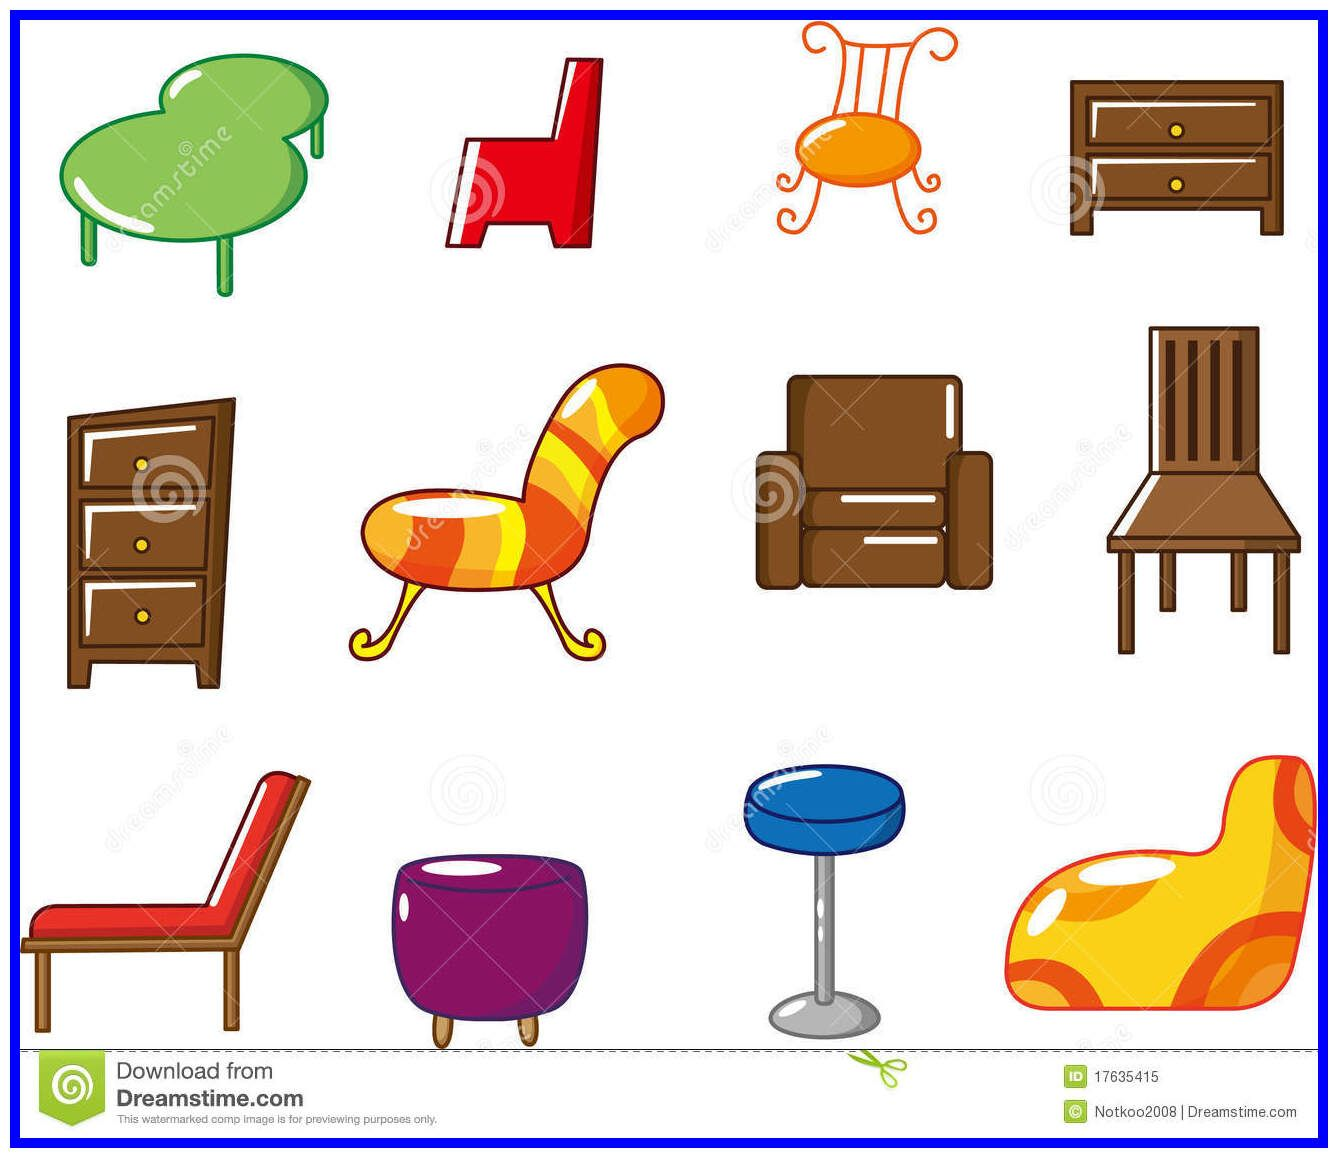 70 Reference Of Chair Drawing Cartoon In 2020 Chair Drawing Toddler Painting Cartoon Drawings